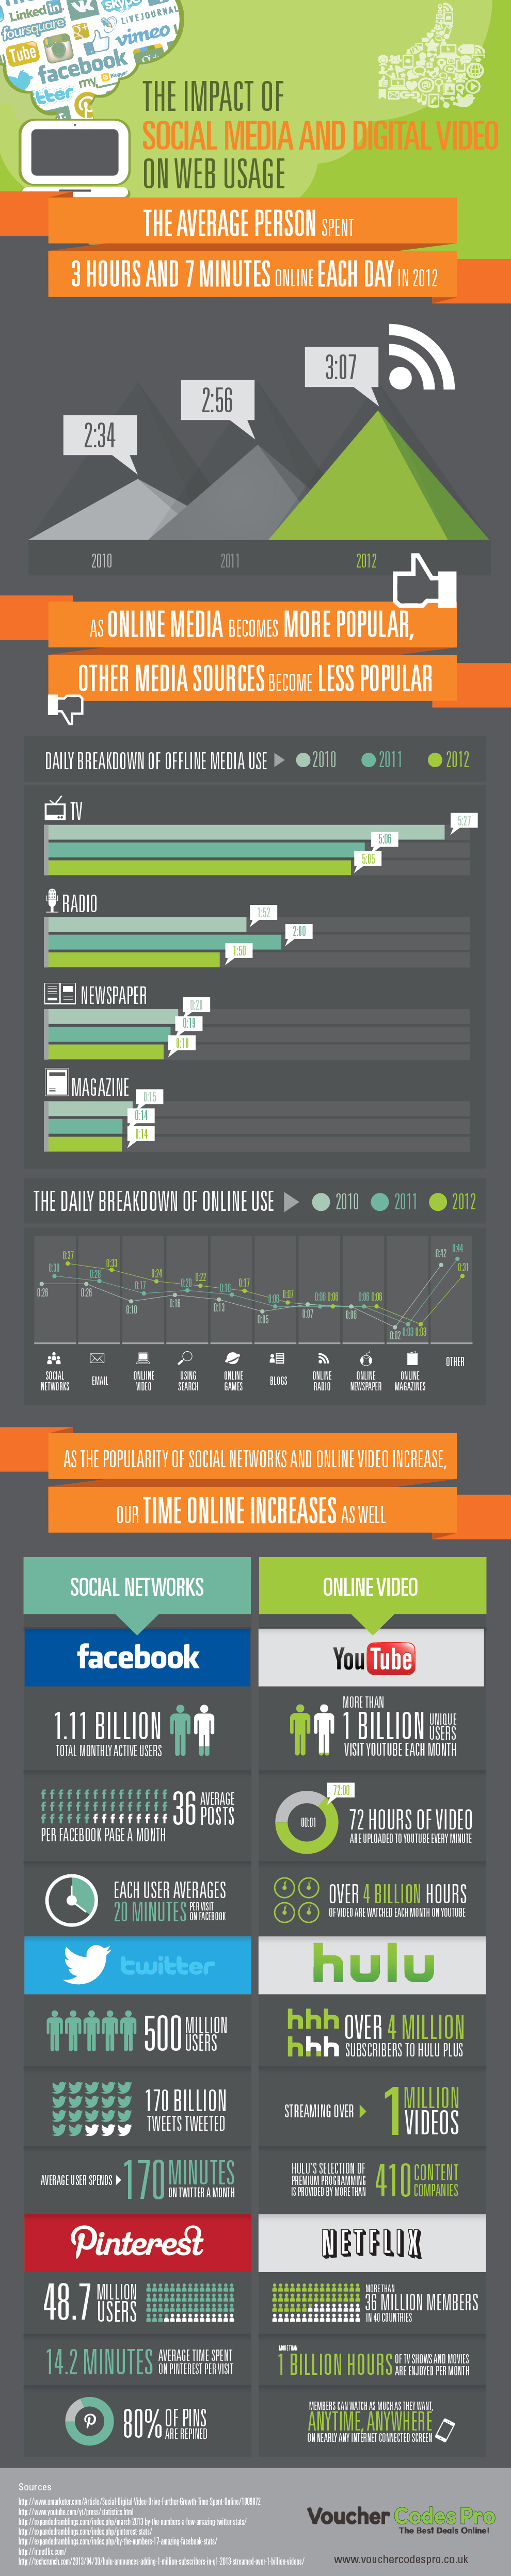 The Impact Of Social Media And digital video On Web Usage